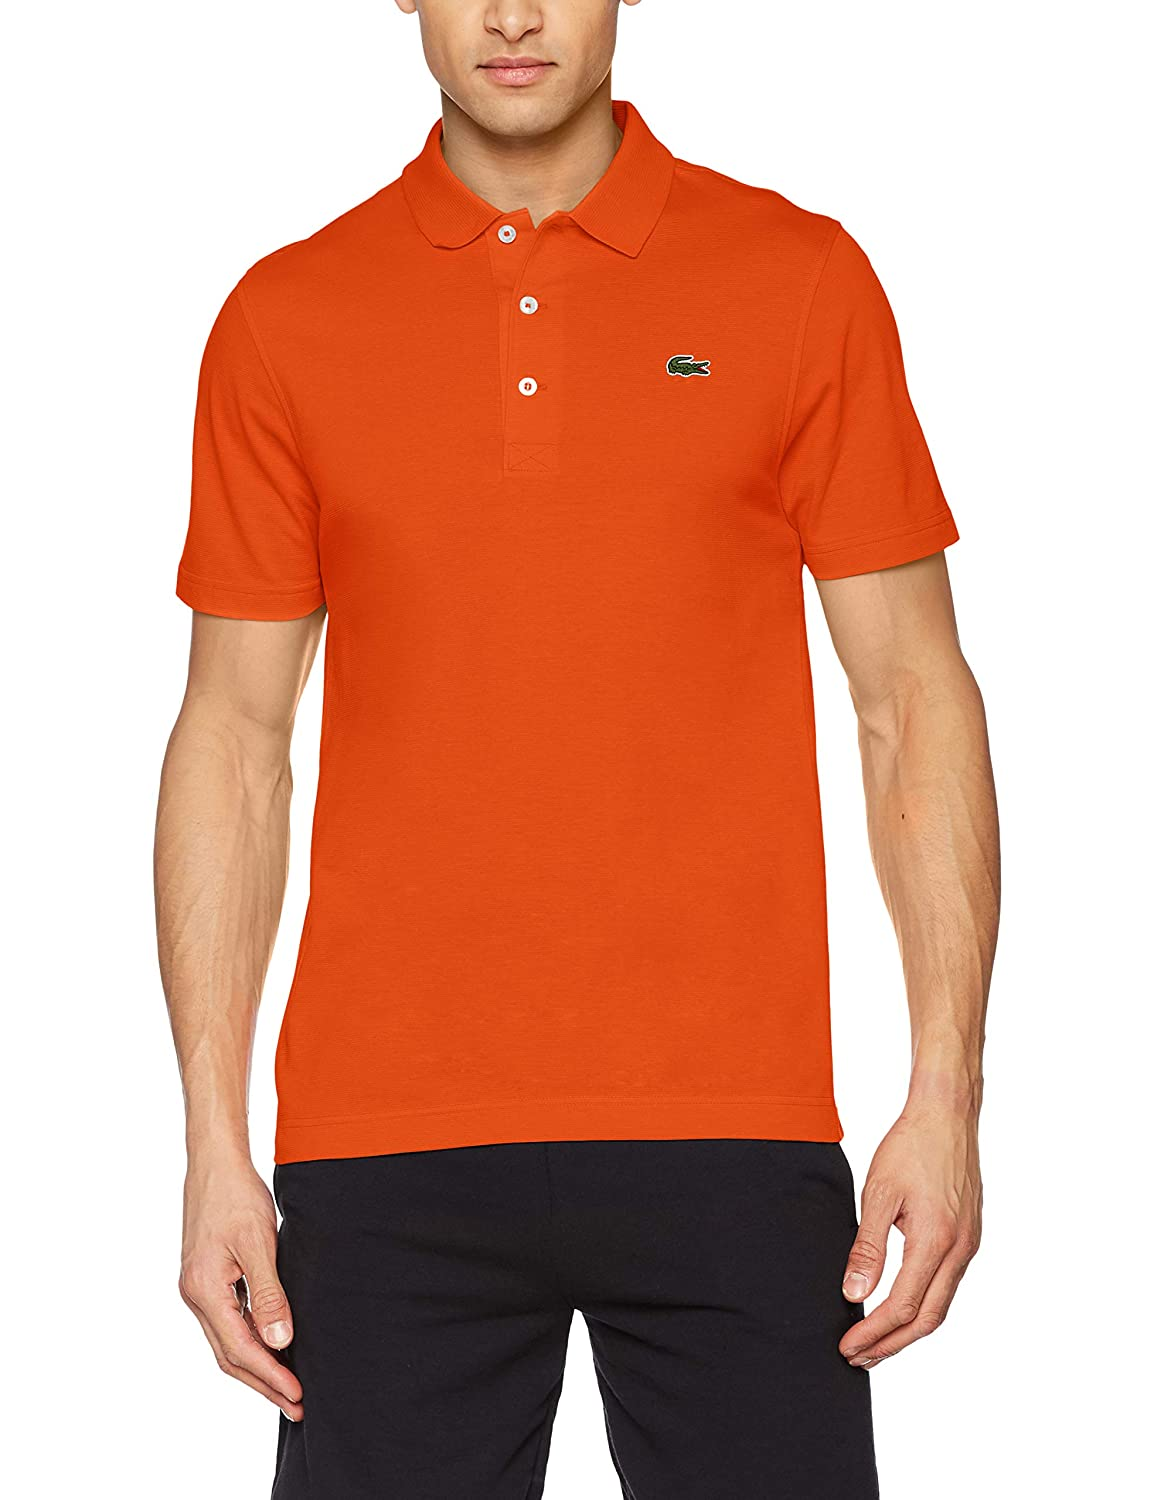 Orange (Geranium 5rq) XXXX-grand  Lacoste, Polo Homme, Sport